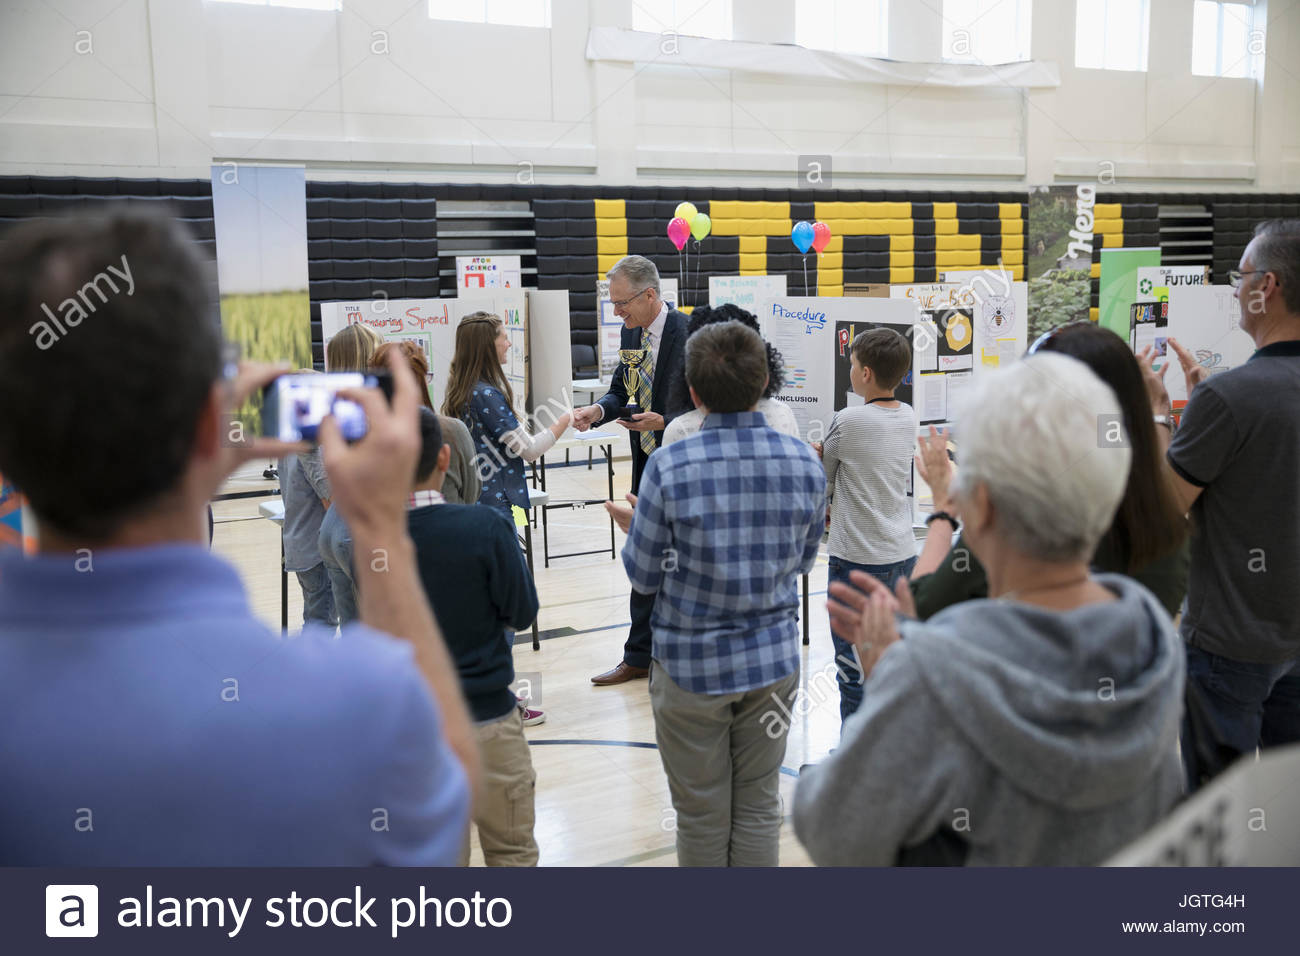 Science teacher awarding middle school student at science fair - Stock Image